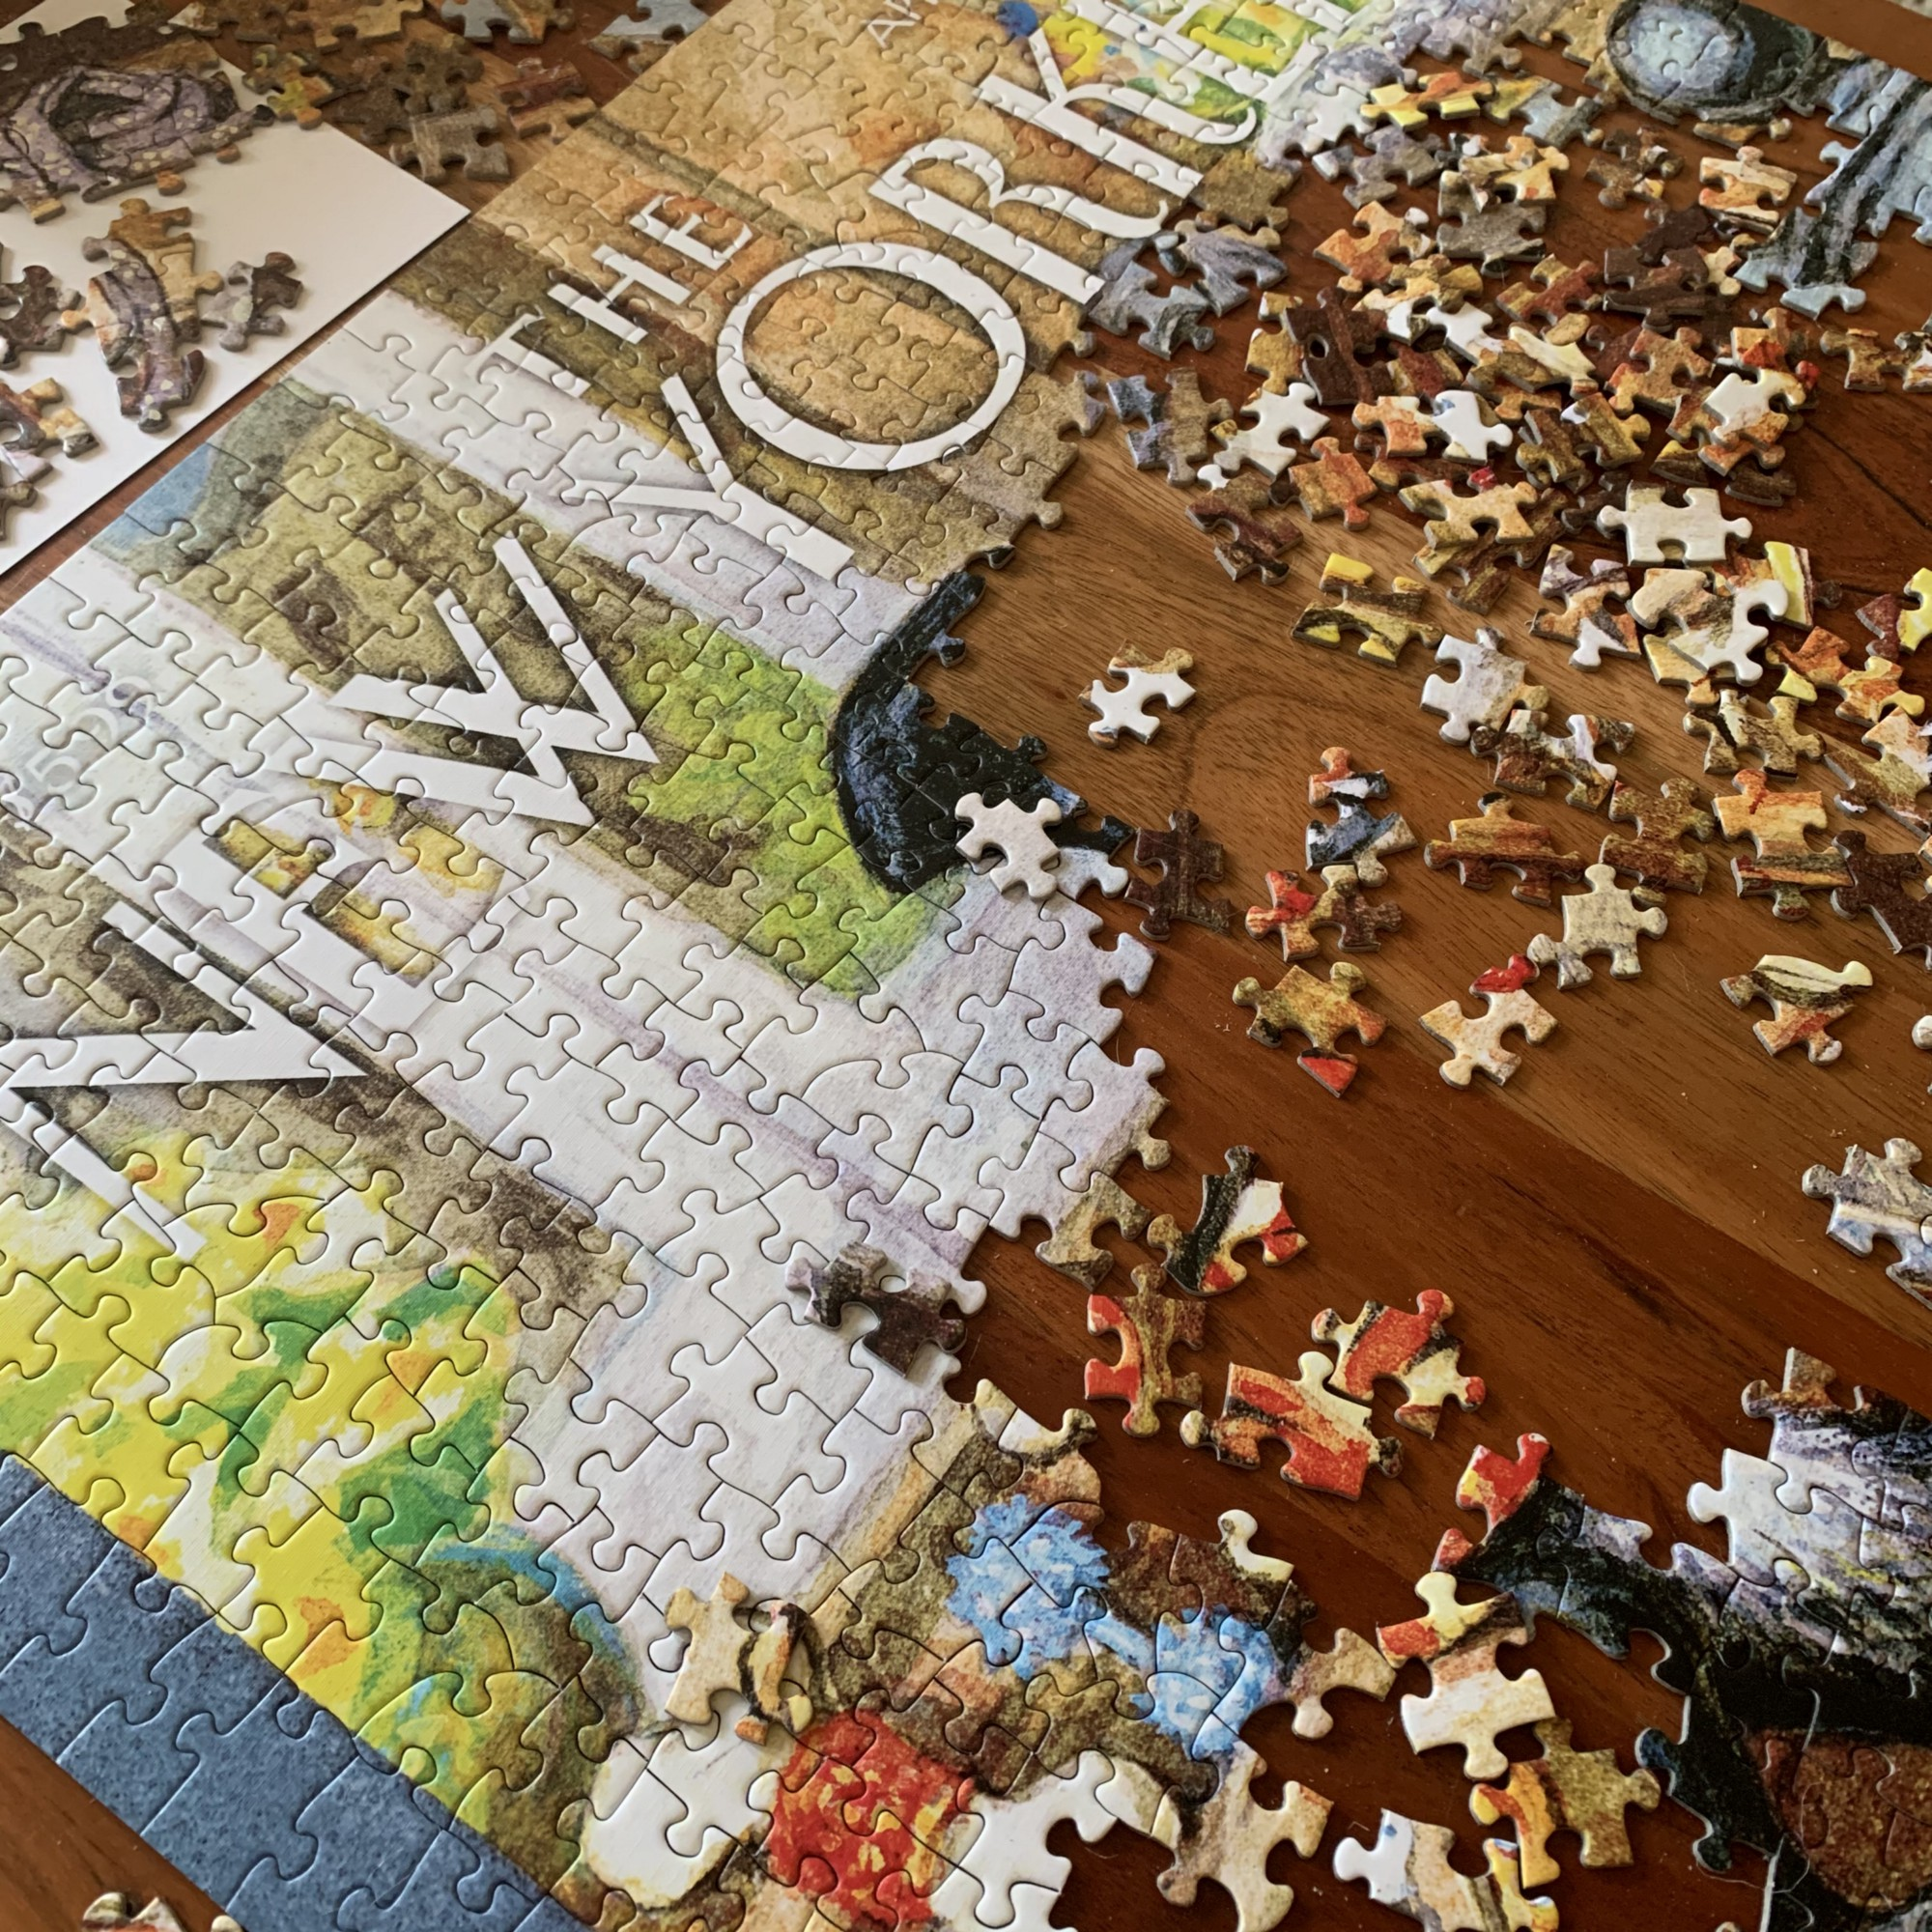 An in-progress puzzle of a New Yorker magazine cover